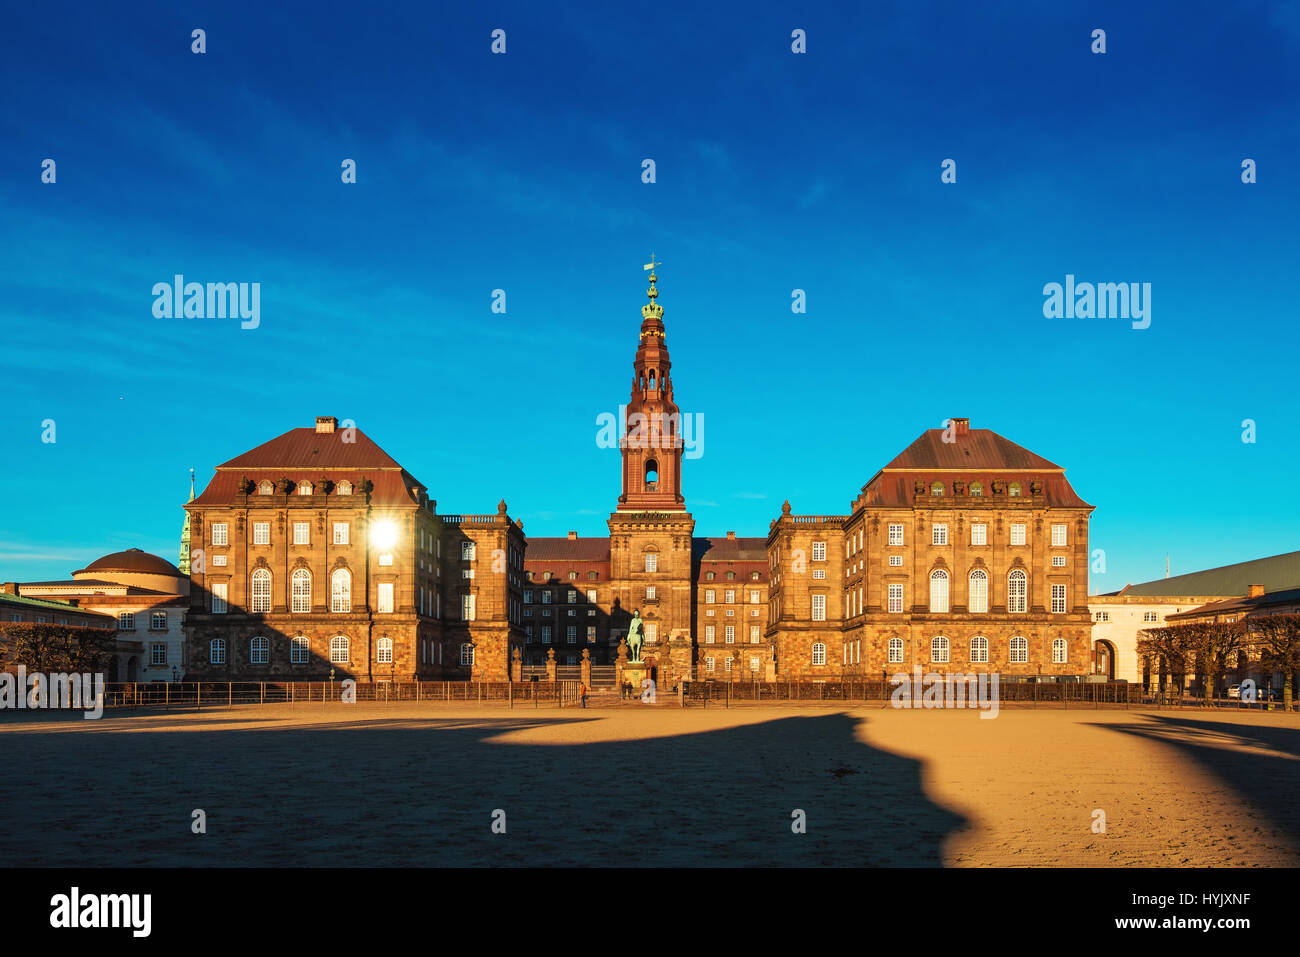 COPENHAGEN, DENMARK - MARCH 11, 2017: Christiansborg Palace in Copenhagen Denmark, Danish parliament building. Parts - Stock Image